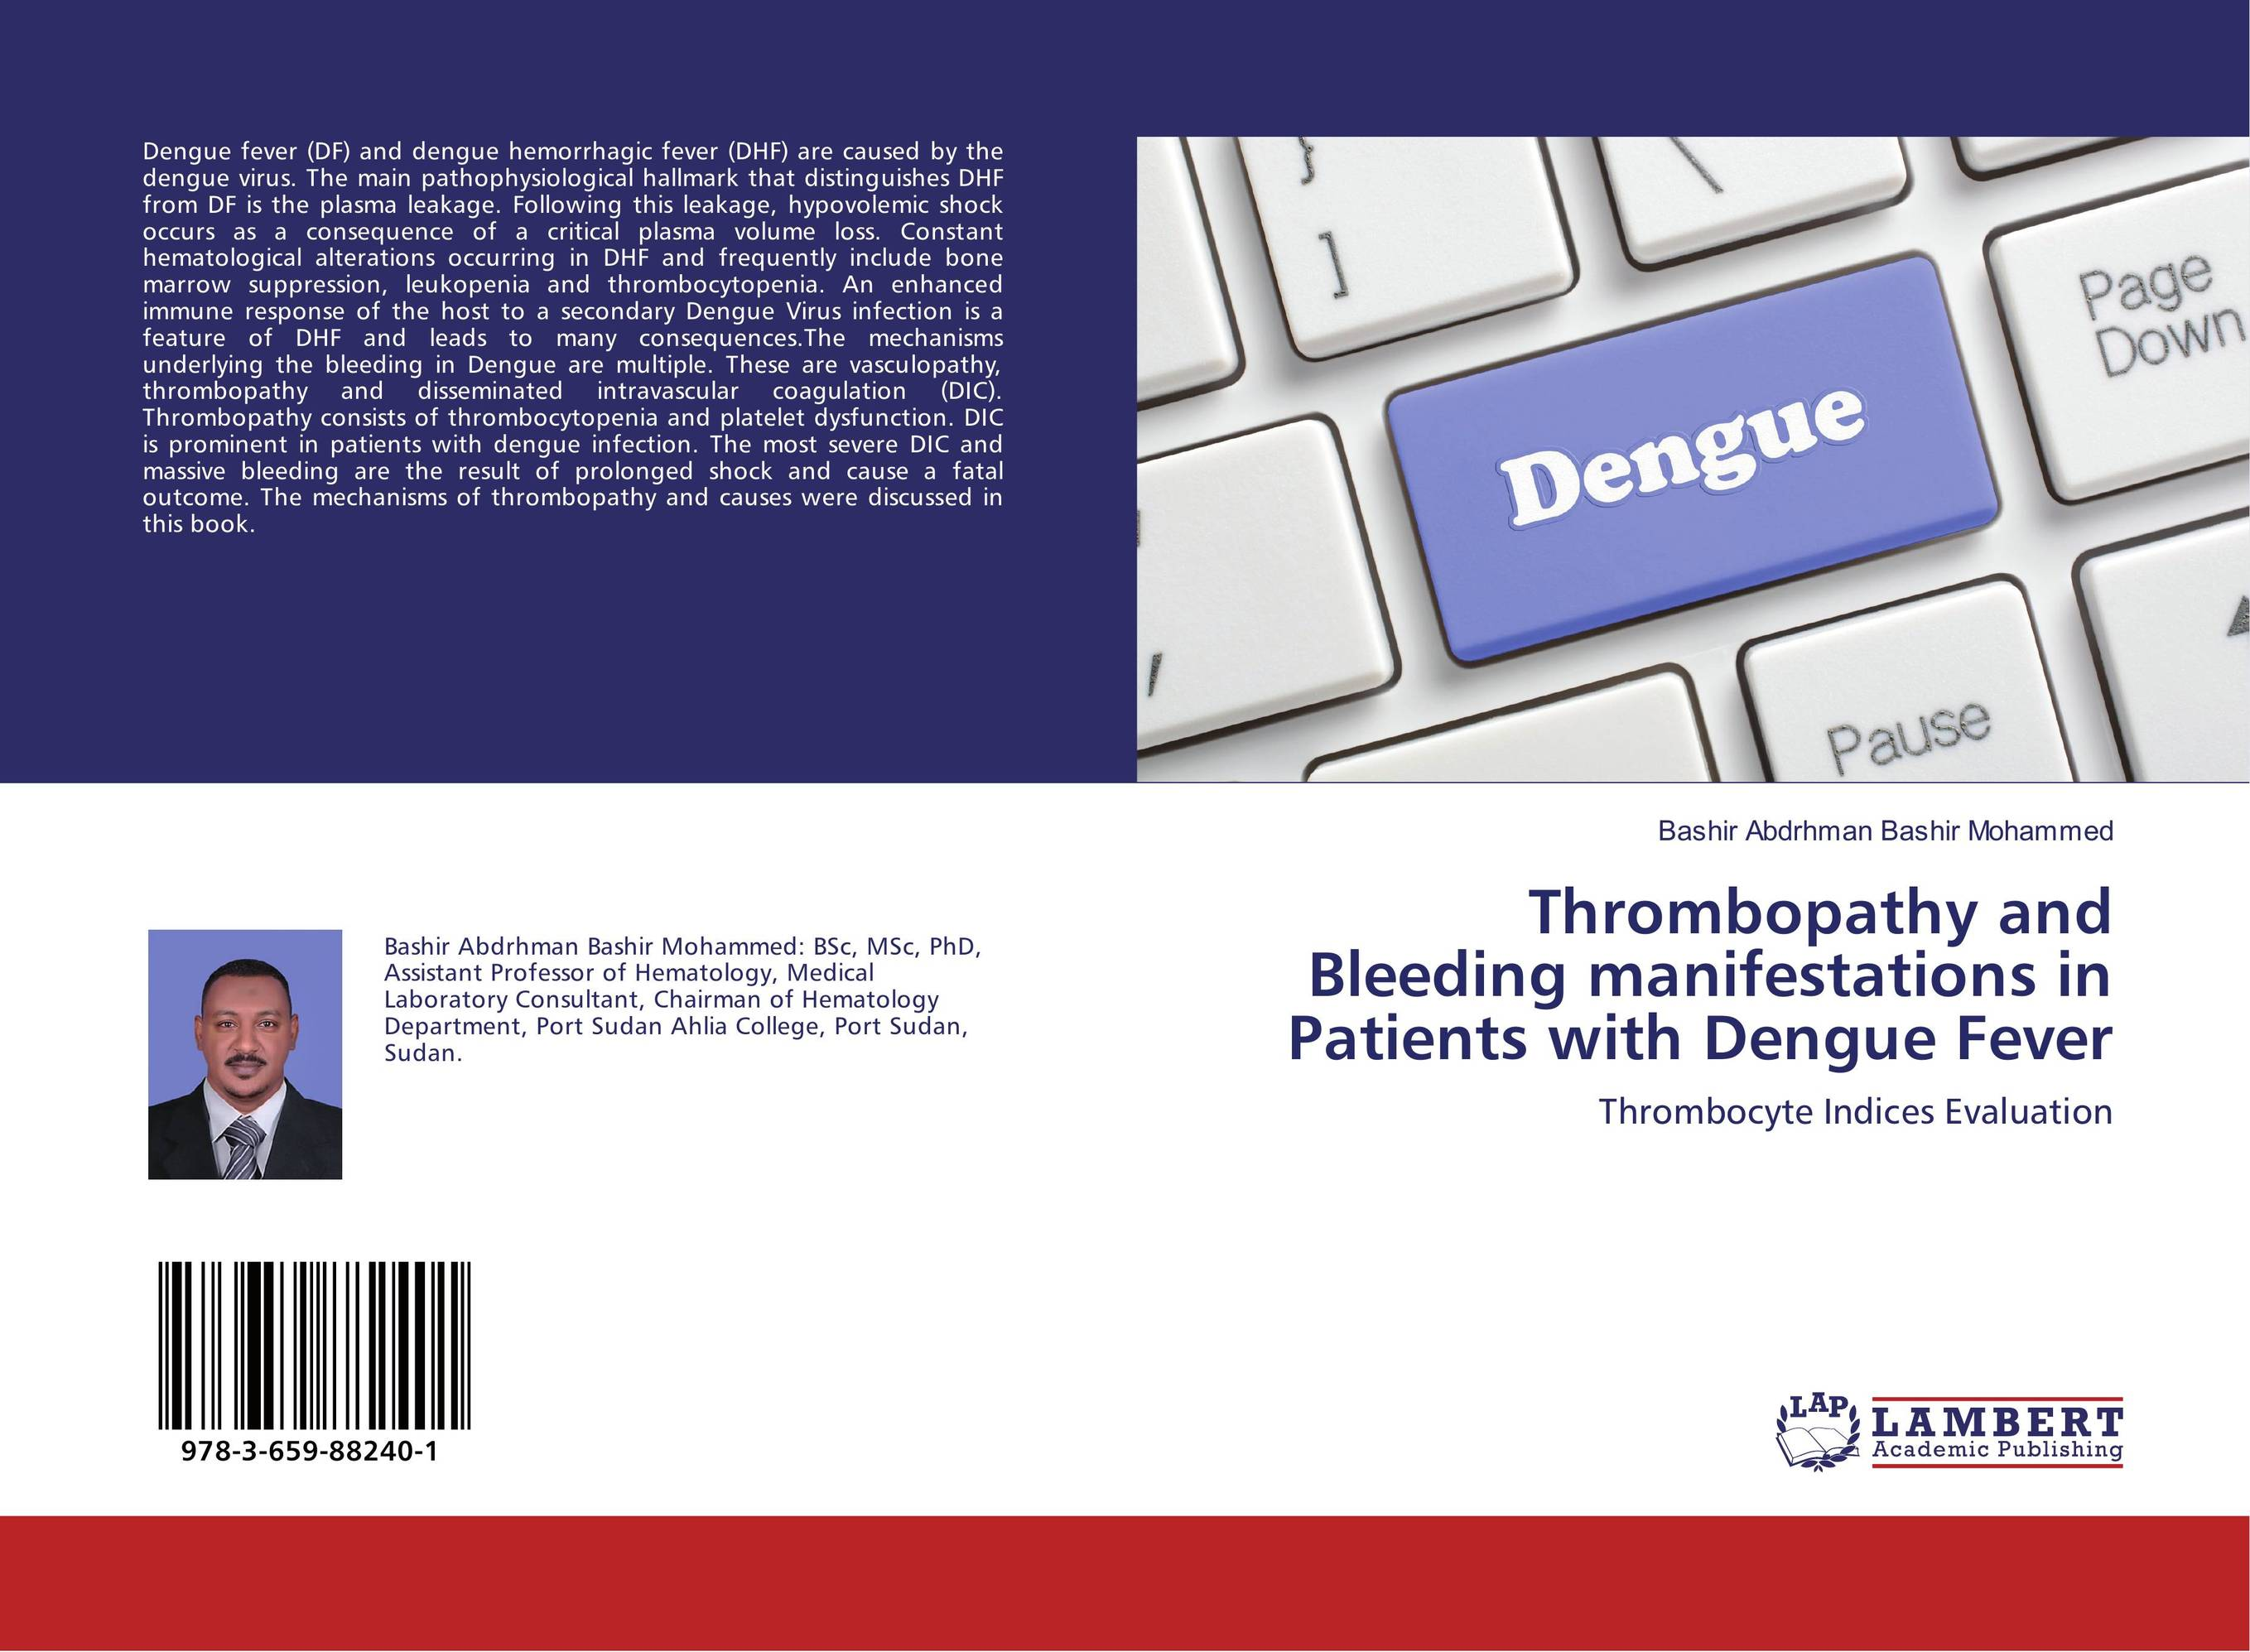 Thrombopathy and Bleeding manifestations in Patients with Dengue Fever недорго, оригинальная цена